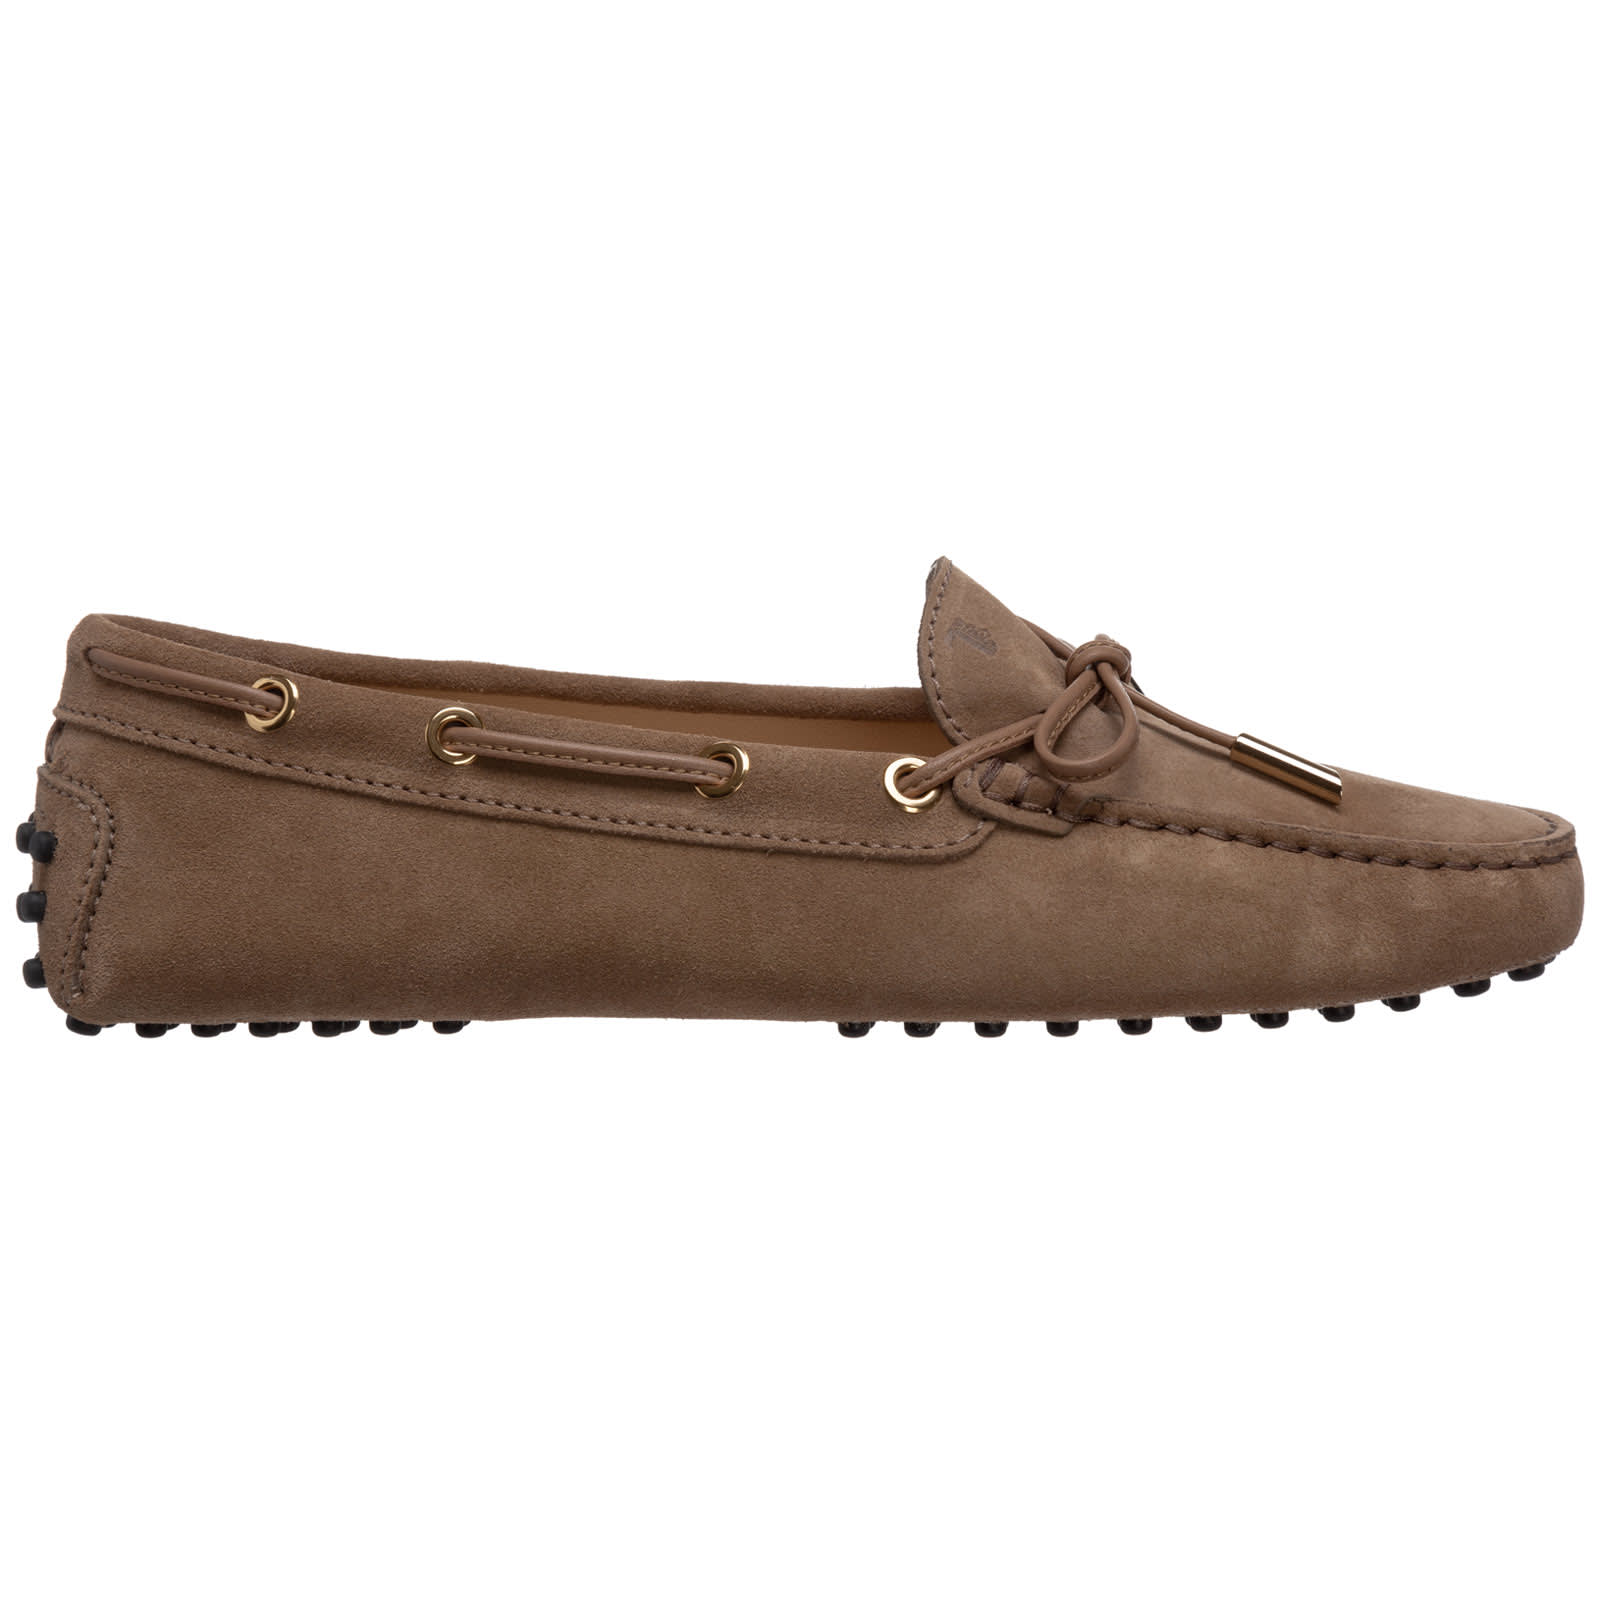 Buy Tods Tournament Moccasins online, shop Tods shoes with free shipping